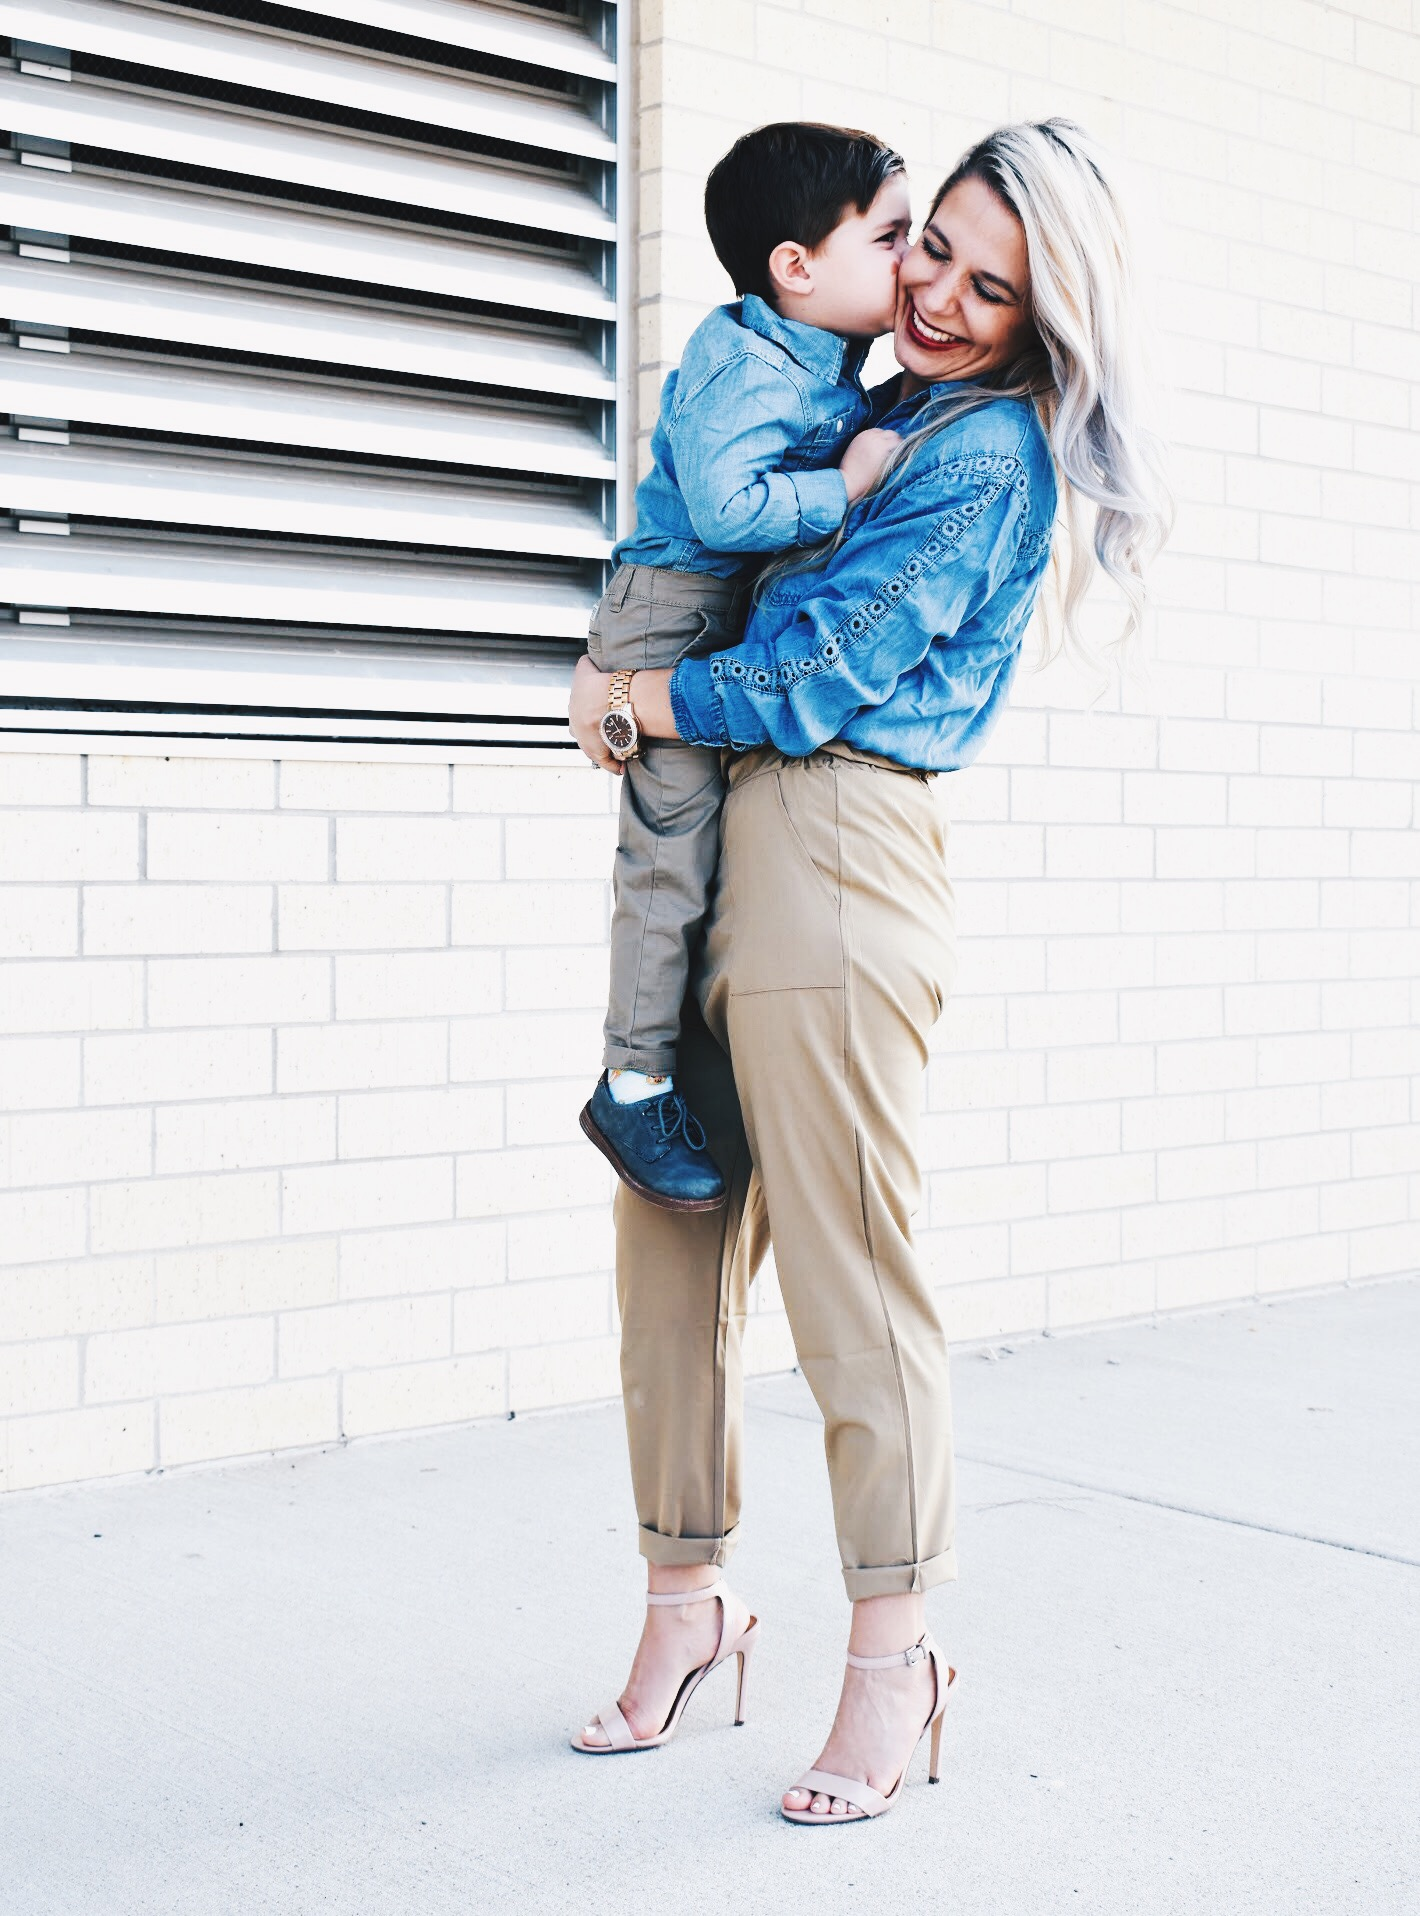 Mommy and Son Matching Outfit Ideas - Mommy and Me Outfits for Boys - Mommy and Me Son Outfits - Outfits for Mommy and Son - Chambray Shirt with Khakis is an outfit that can work for mommy and son! Fashion blogger COVET by tricia shows how to style a chambray shirt with khakis in a mommy and me outfit idea for boy moms. #KidsFashion #MommyandMe #Twinning #BoyMom